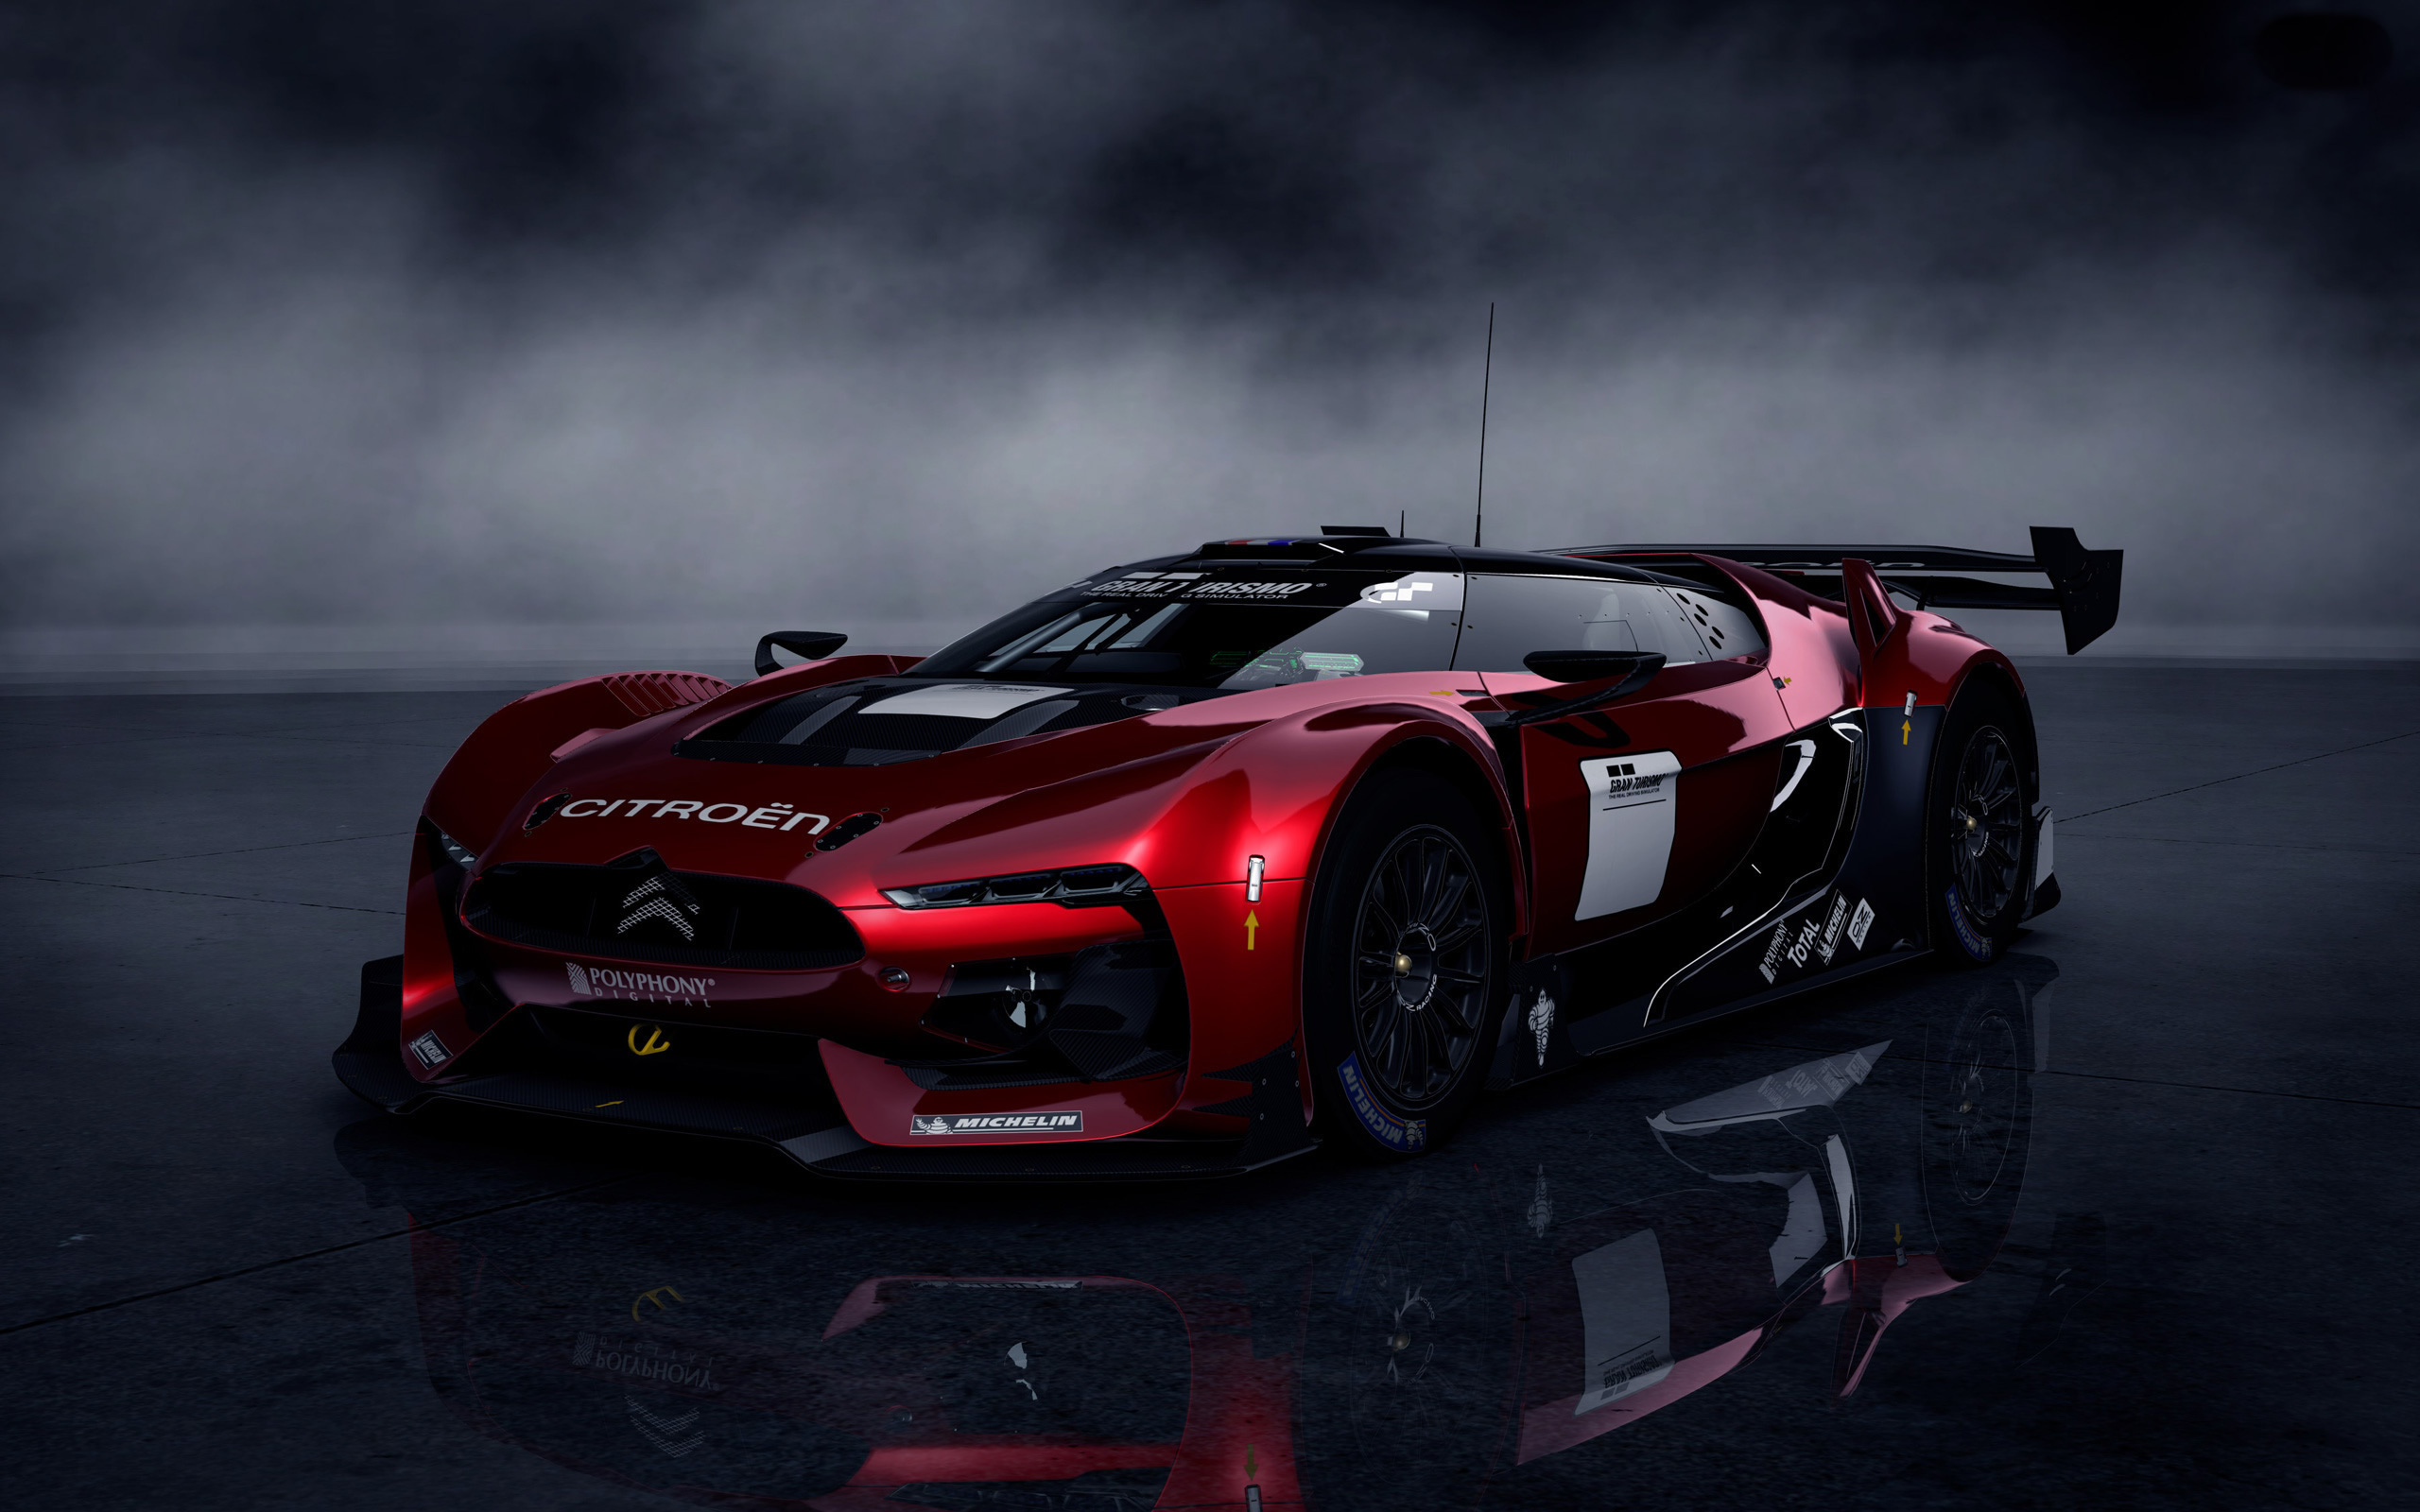 cool car wallpapers 2560x1600